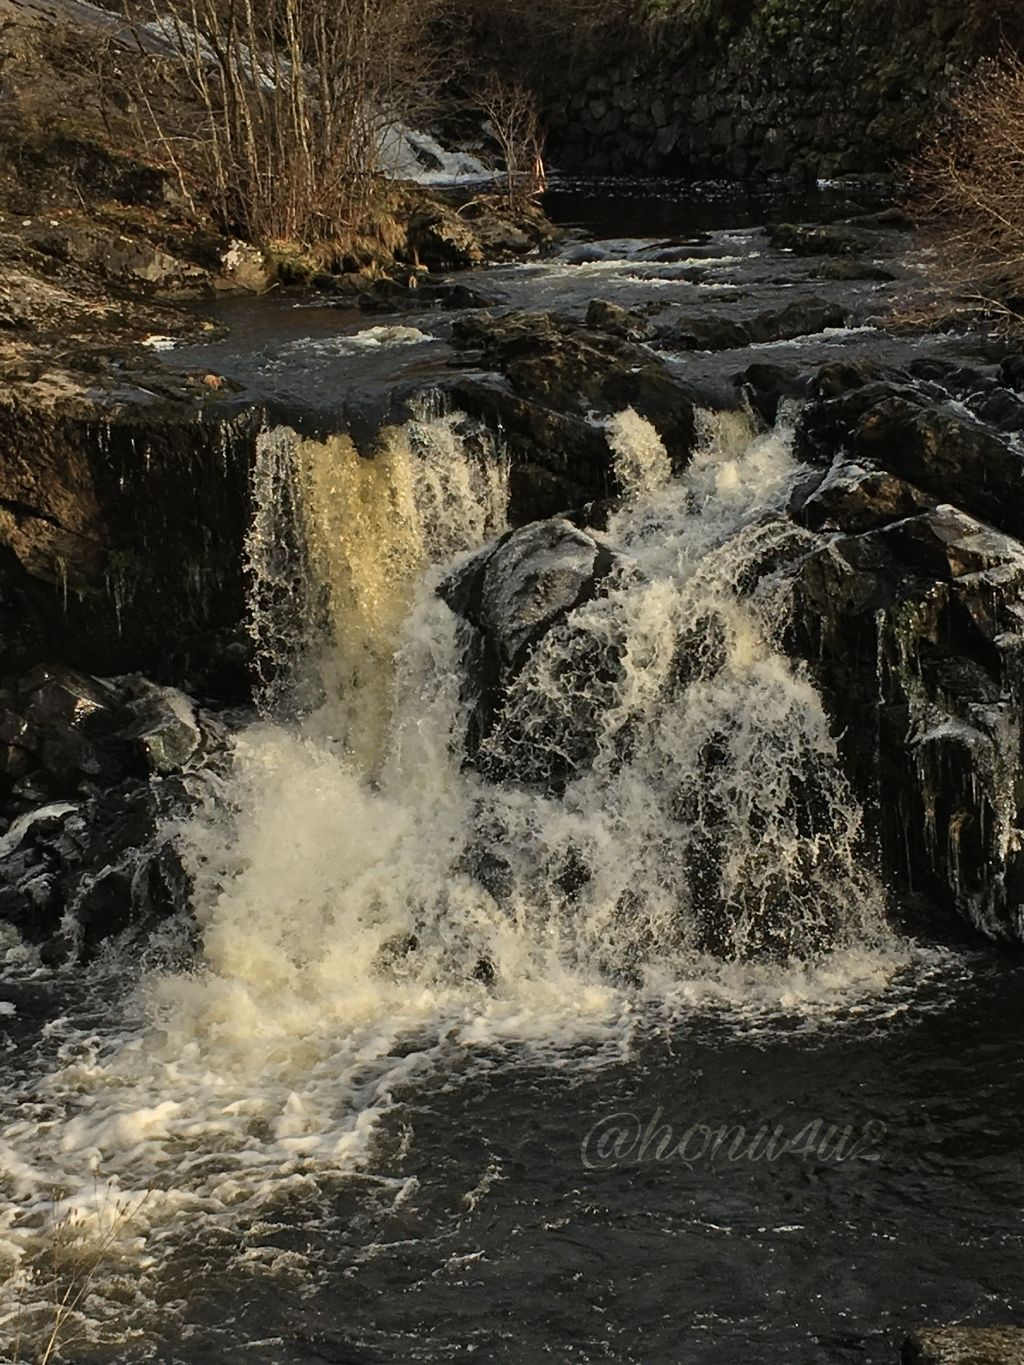 #interesting #nature #powerful #river #stream#waterfall#bærumsverk#outandabouth#myday#november#cold#crispy